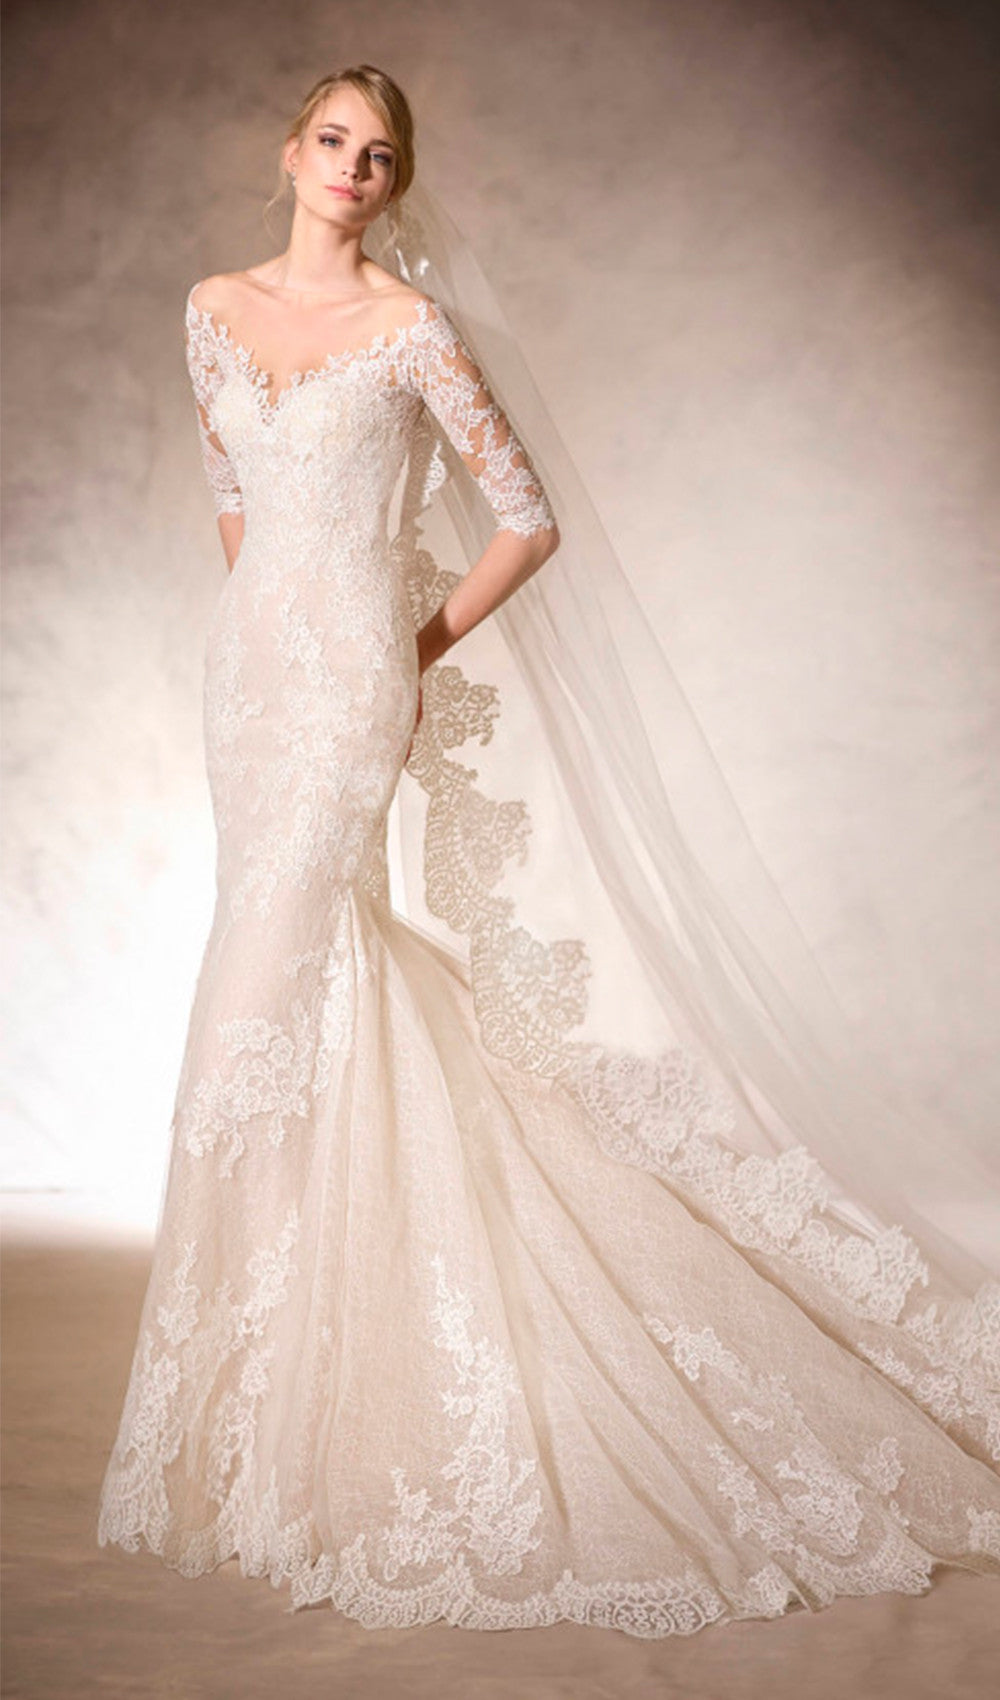 La Sposa - STYLE HITO | Schaffer's Bridal in Scottsdale, Arizona